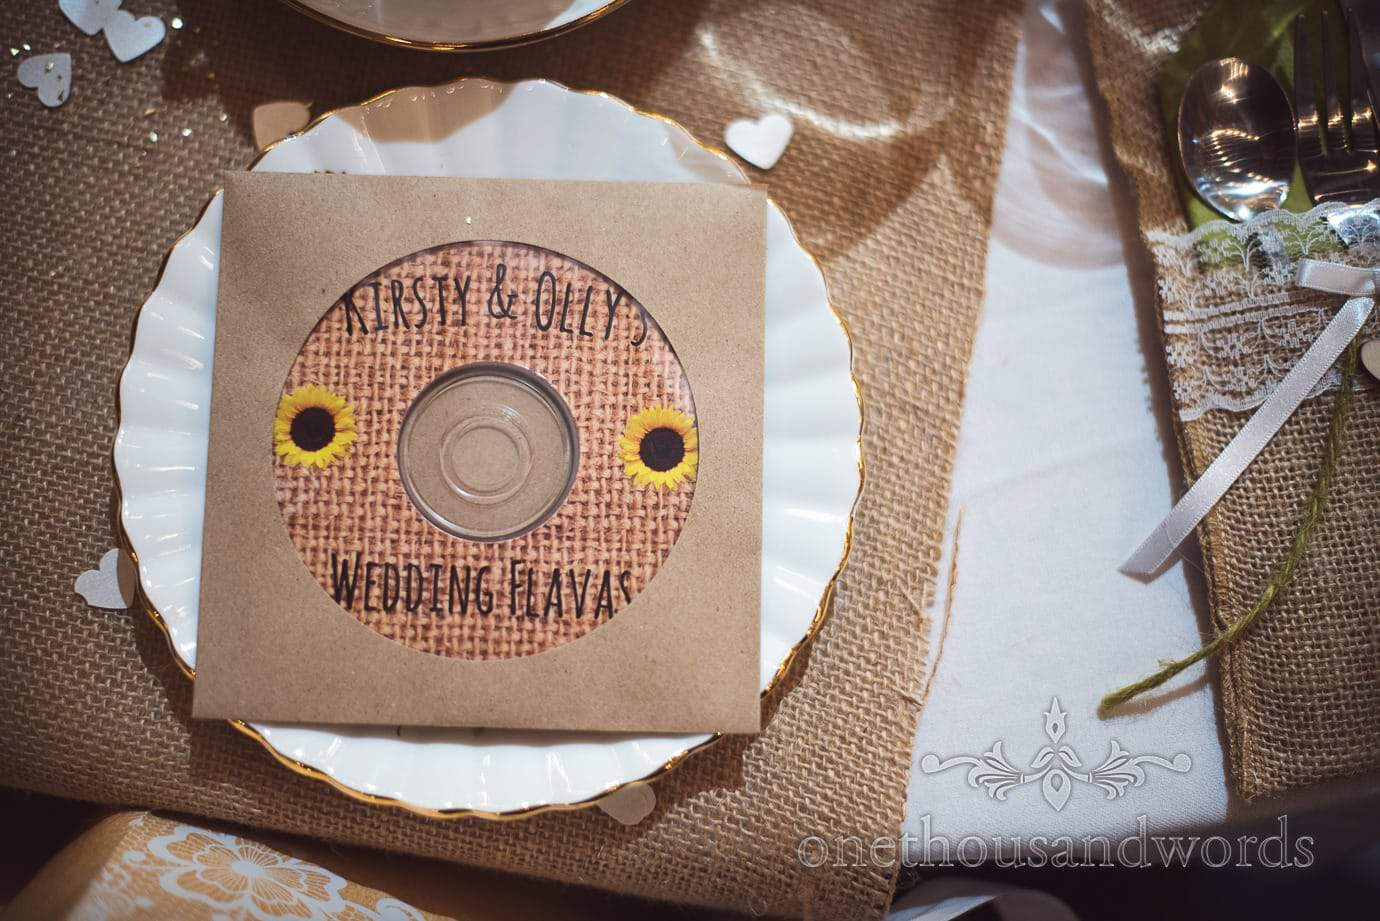 Rustic wedding favours 'wedding flavas' music CD with hessian and sunflower picture at rustic wedding